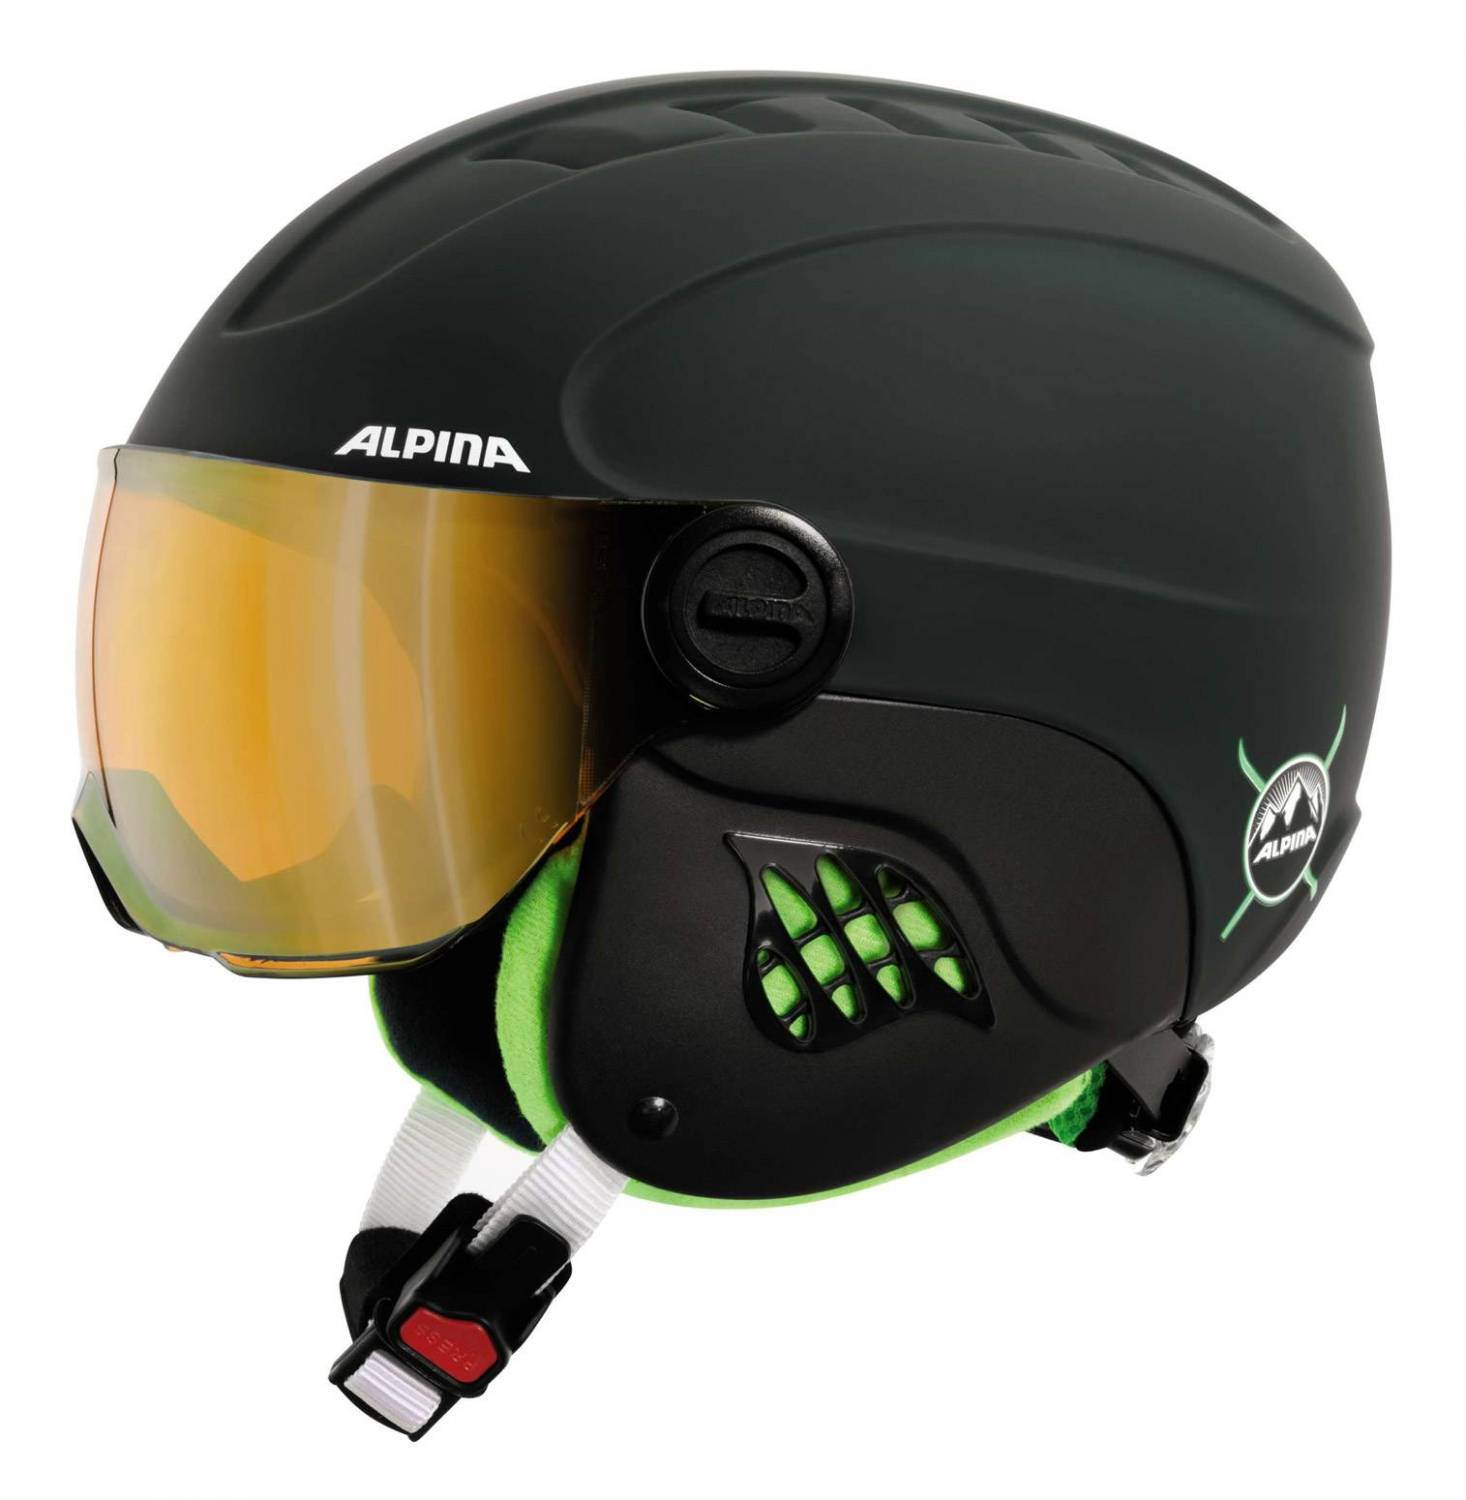 alpina carat le visor kinderskihelm ebay. Black Bedroom Furniture Sets. Home Design Ideas